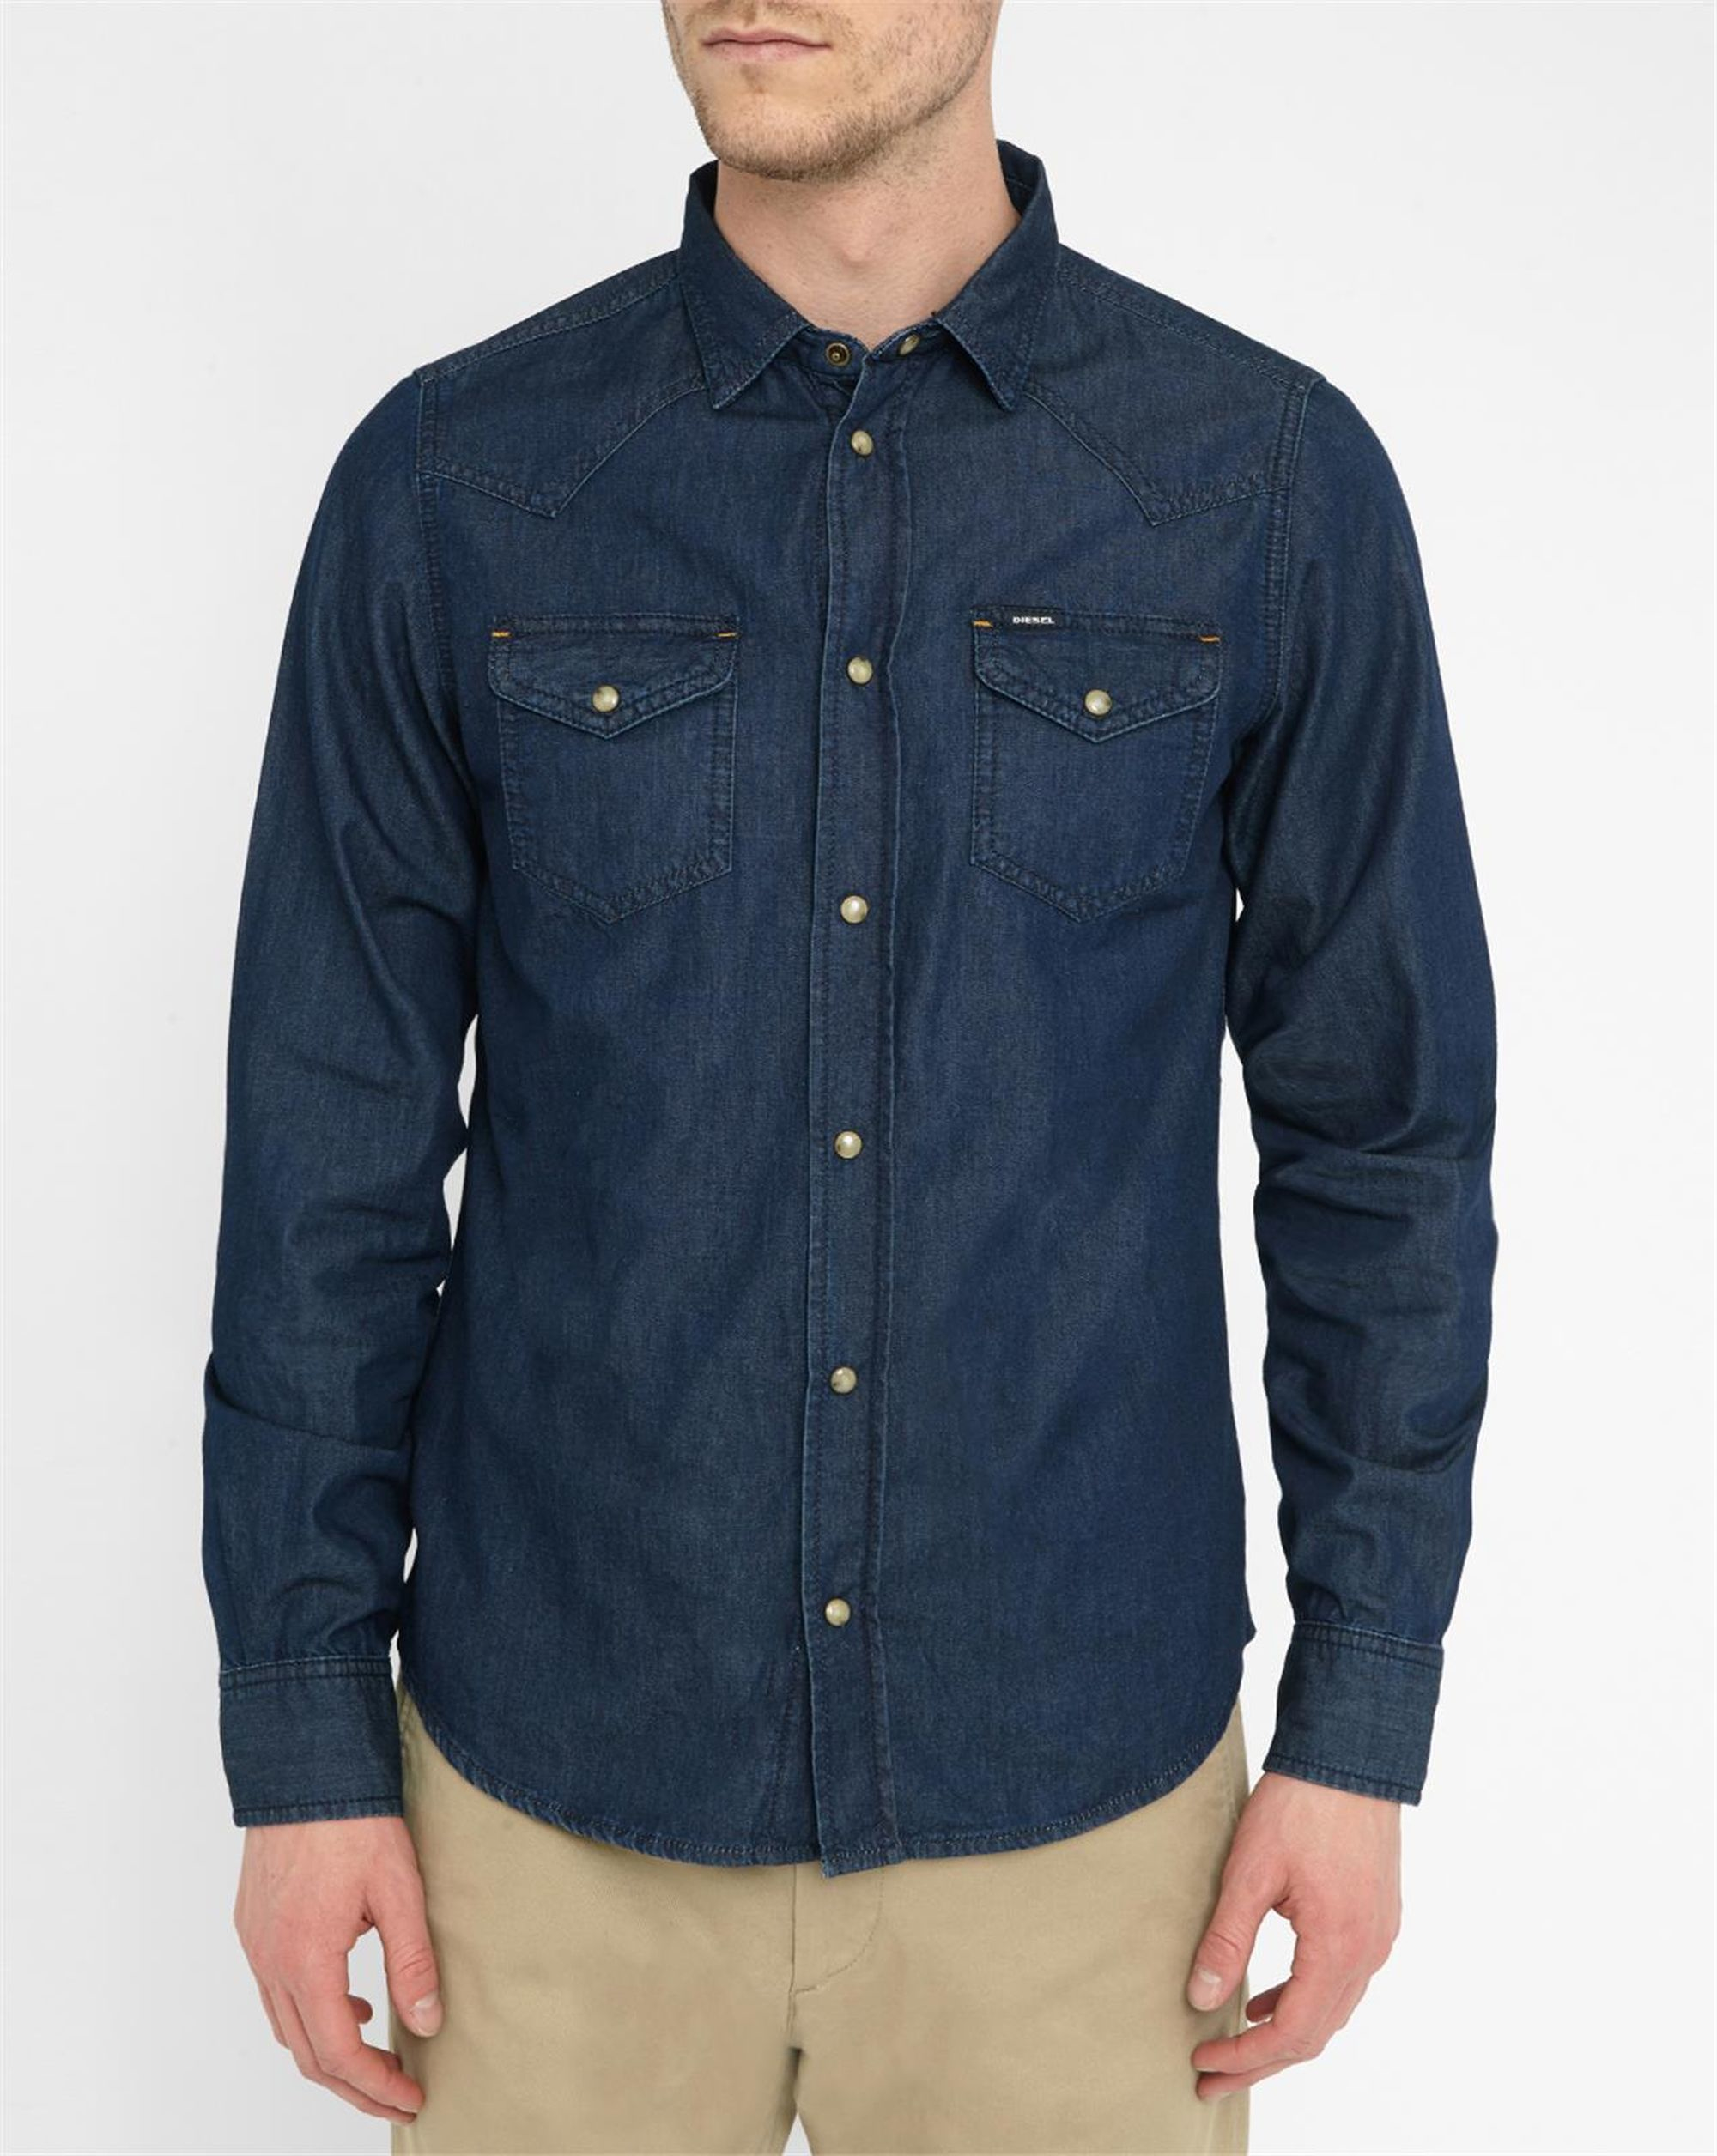 Diesel Blue Sonora Denim Press Stud Pockets Shirt In Blue